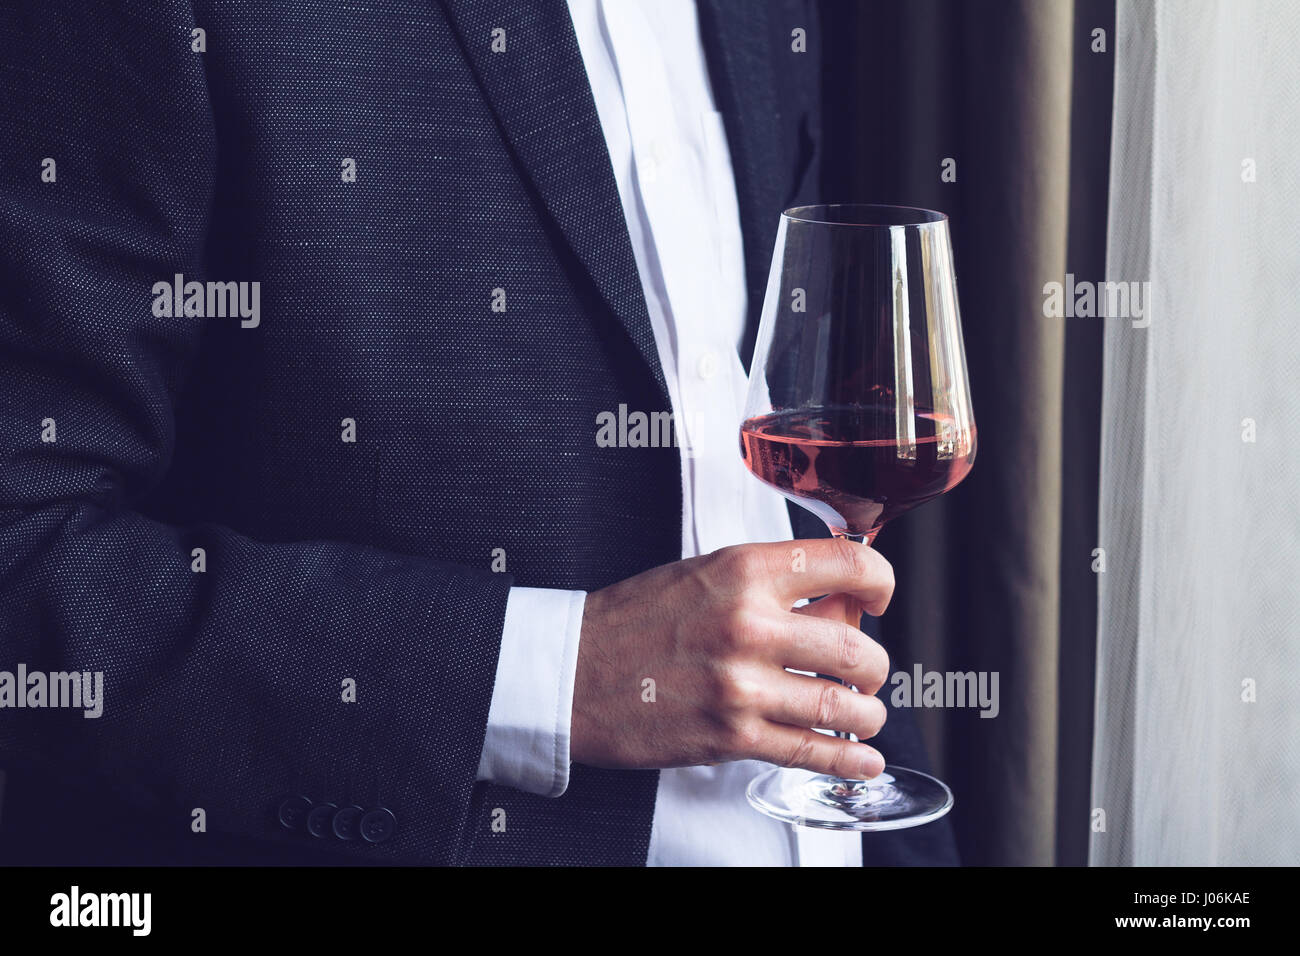 Horizontal close up of Caucasian man in black suit and white shirt holding a tall glass with rose wine  at an event - Stock Image